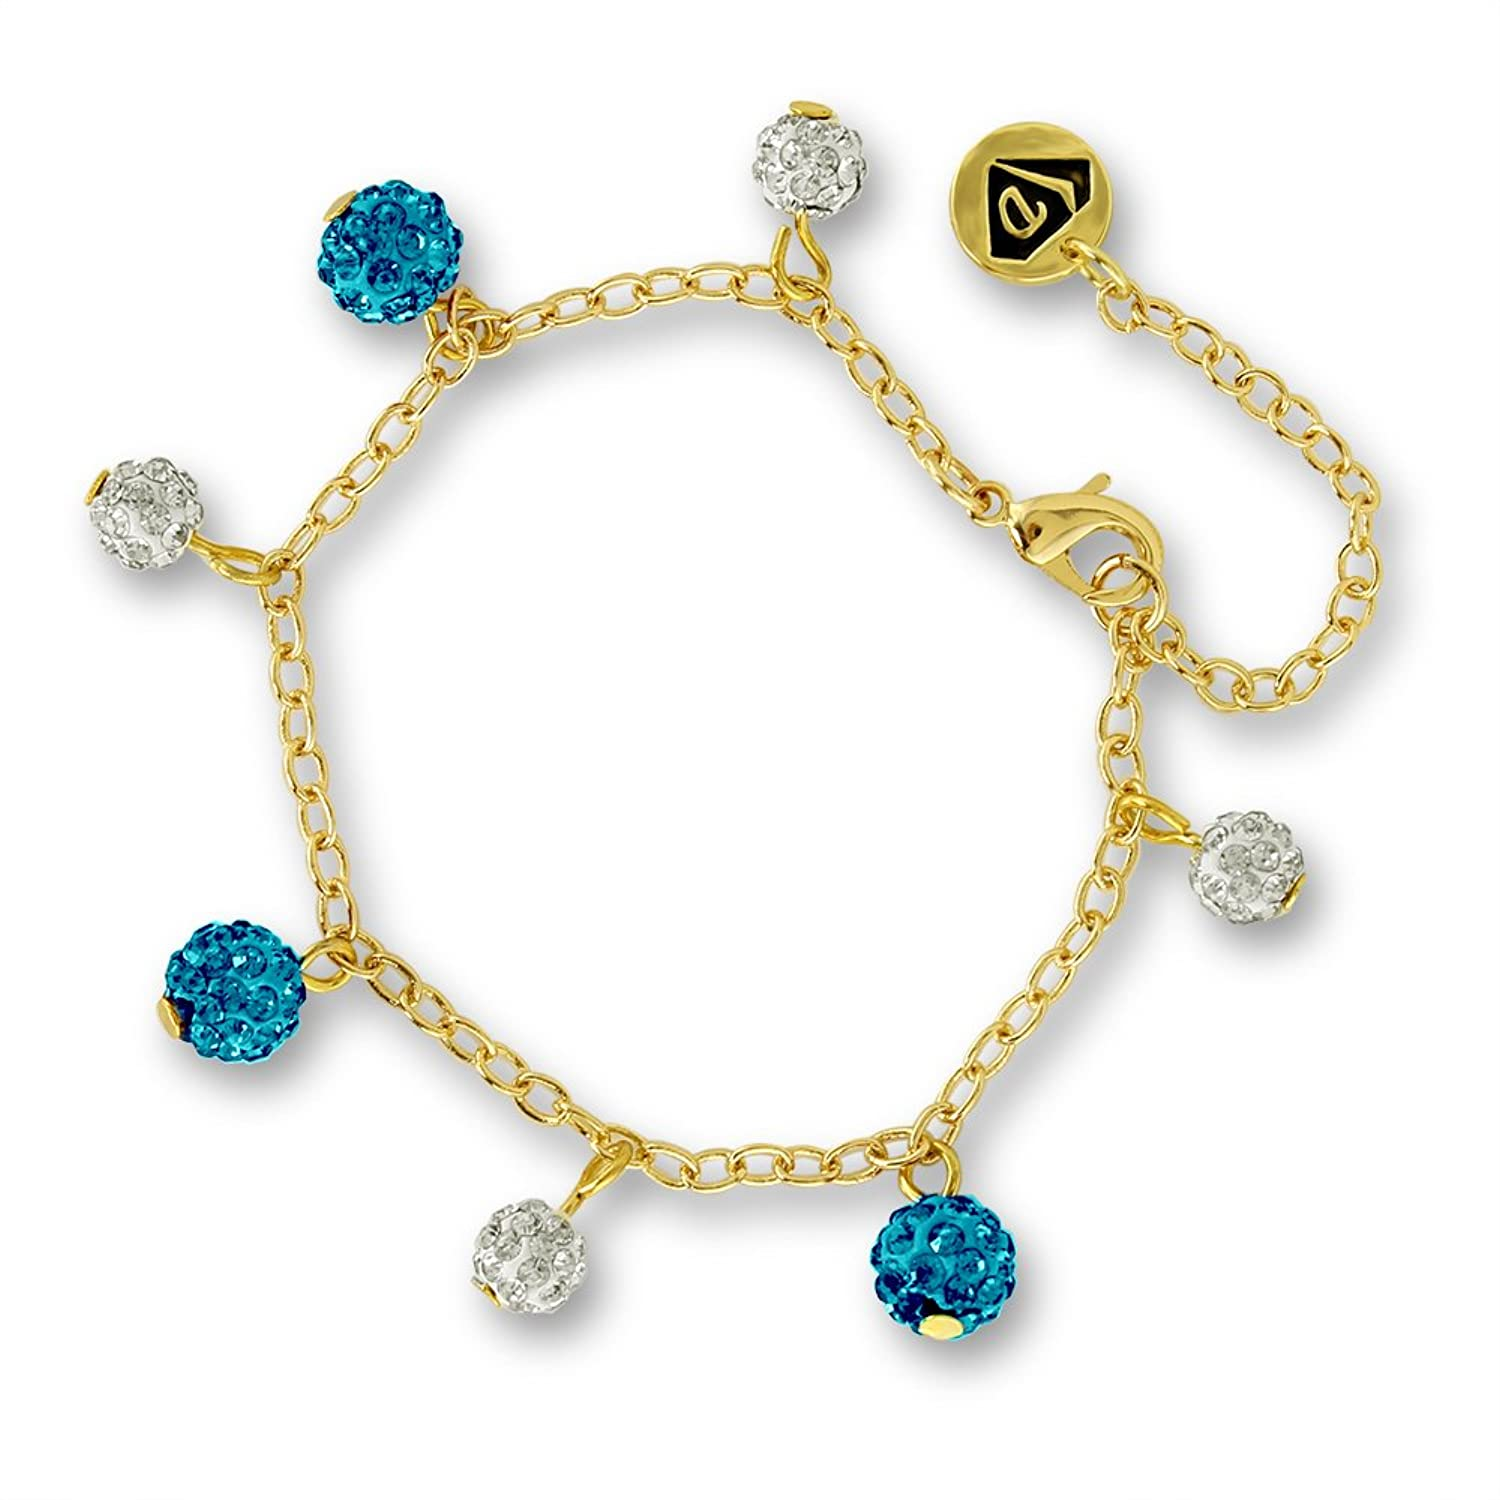 Amazon.com: Charm Bracelet for Girls with Sparkly Crystal Balls ...